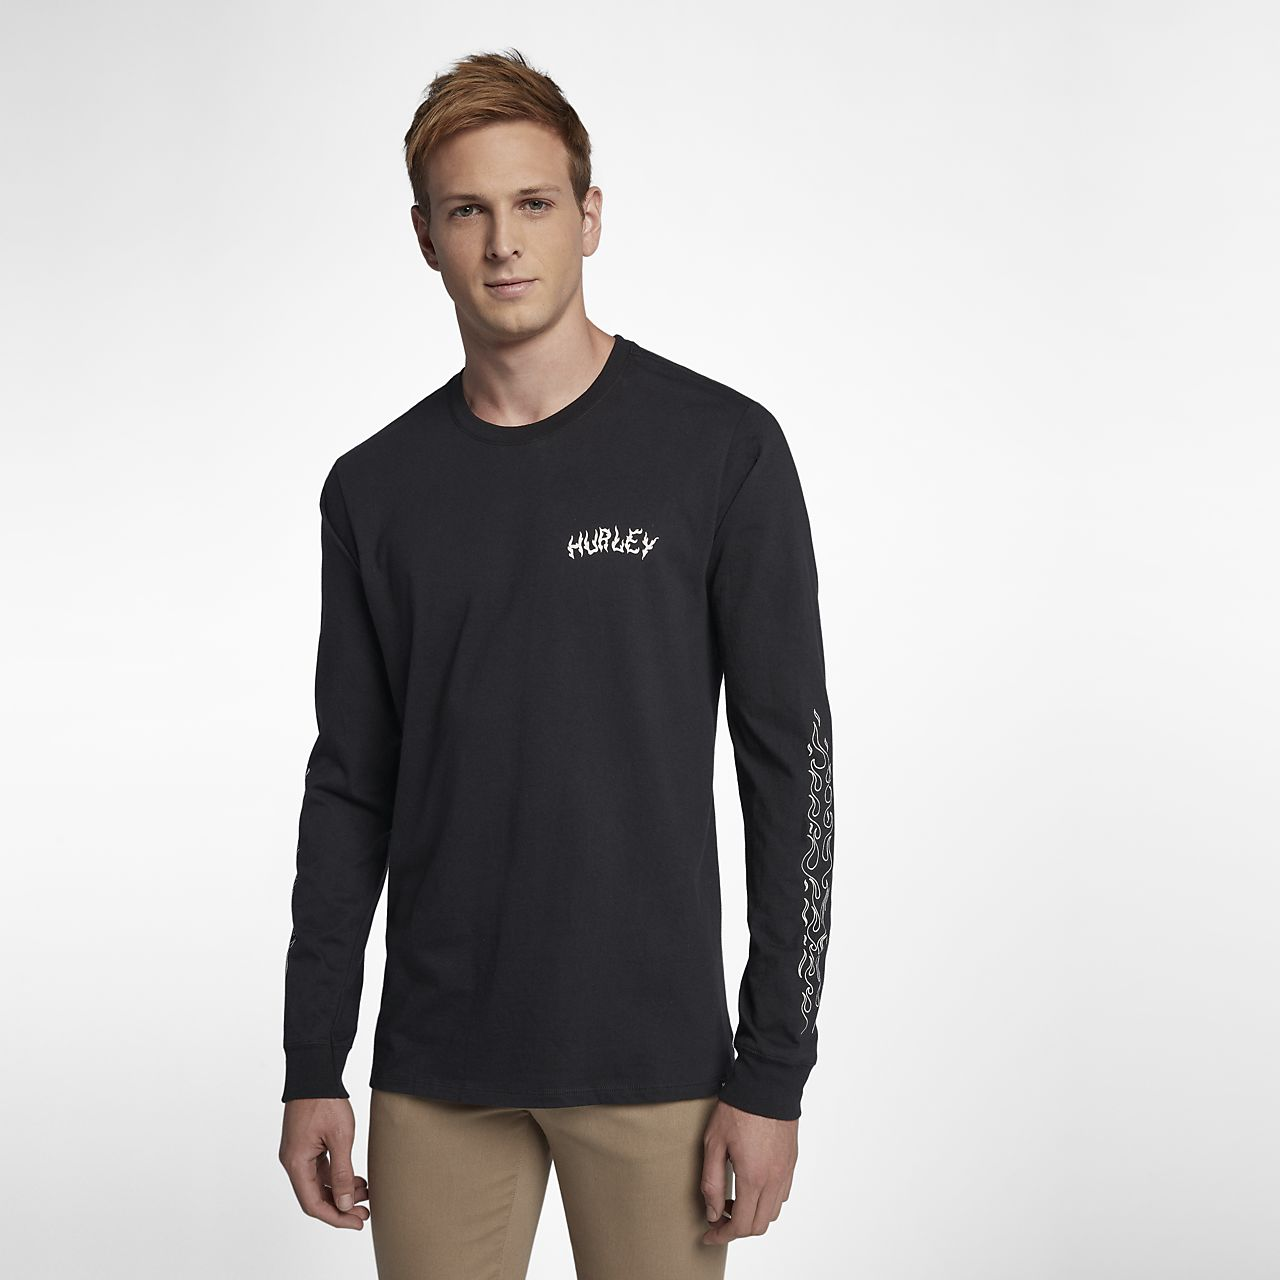 Hurley stay cool men 39 s long sleeve t shirt for Cool long sleeve t shirts for men